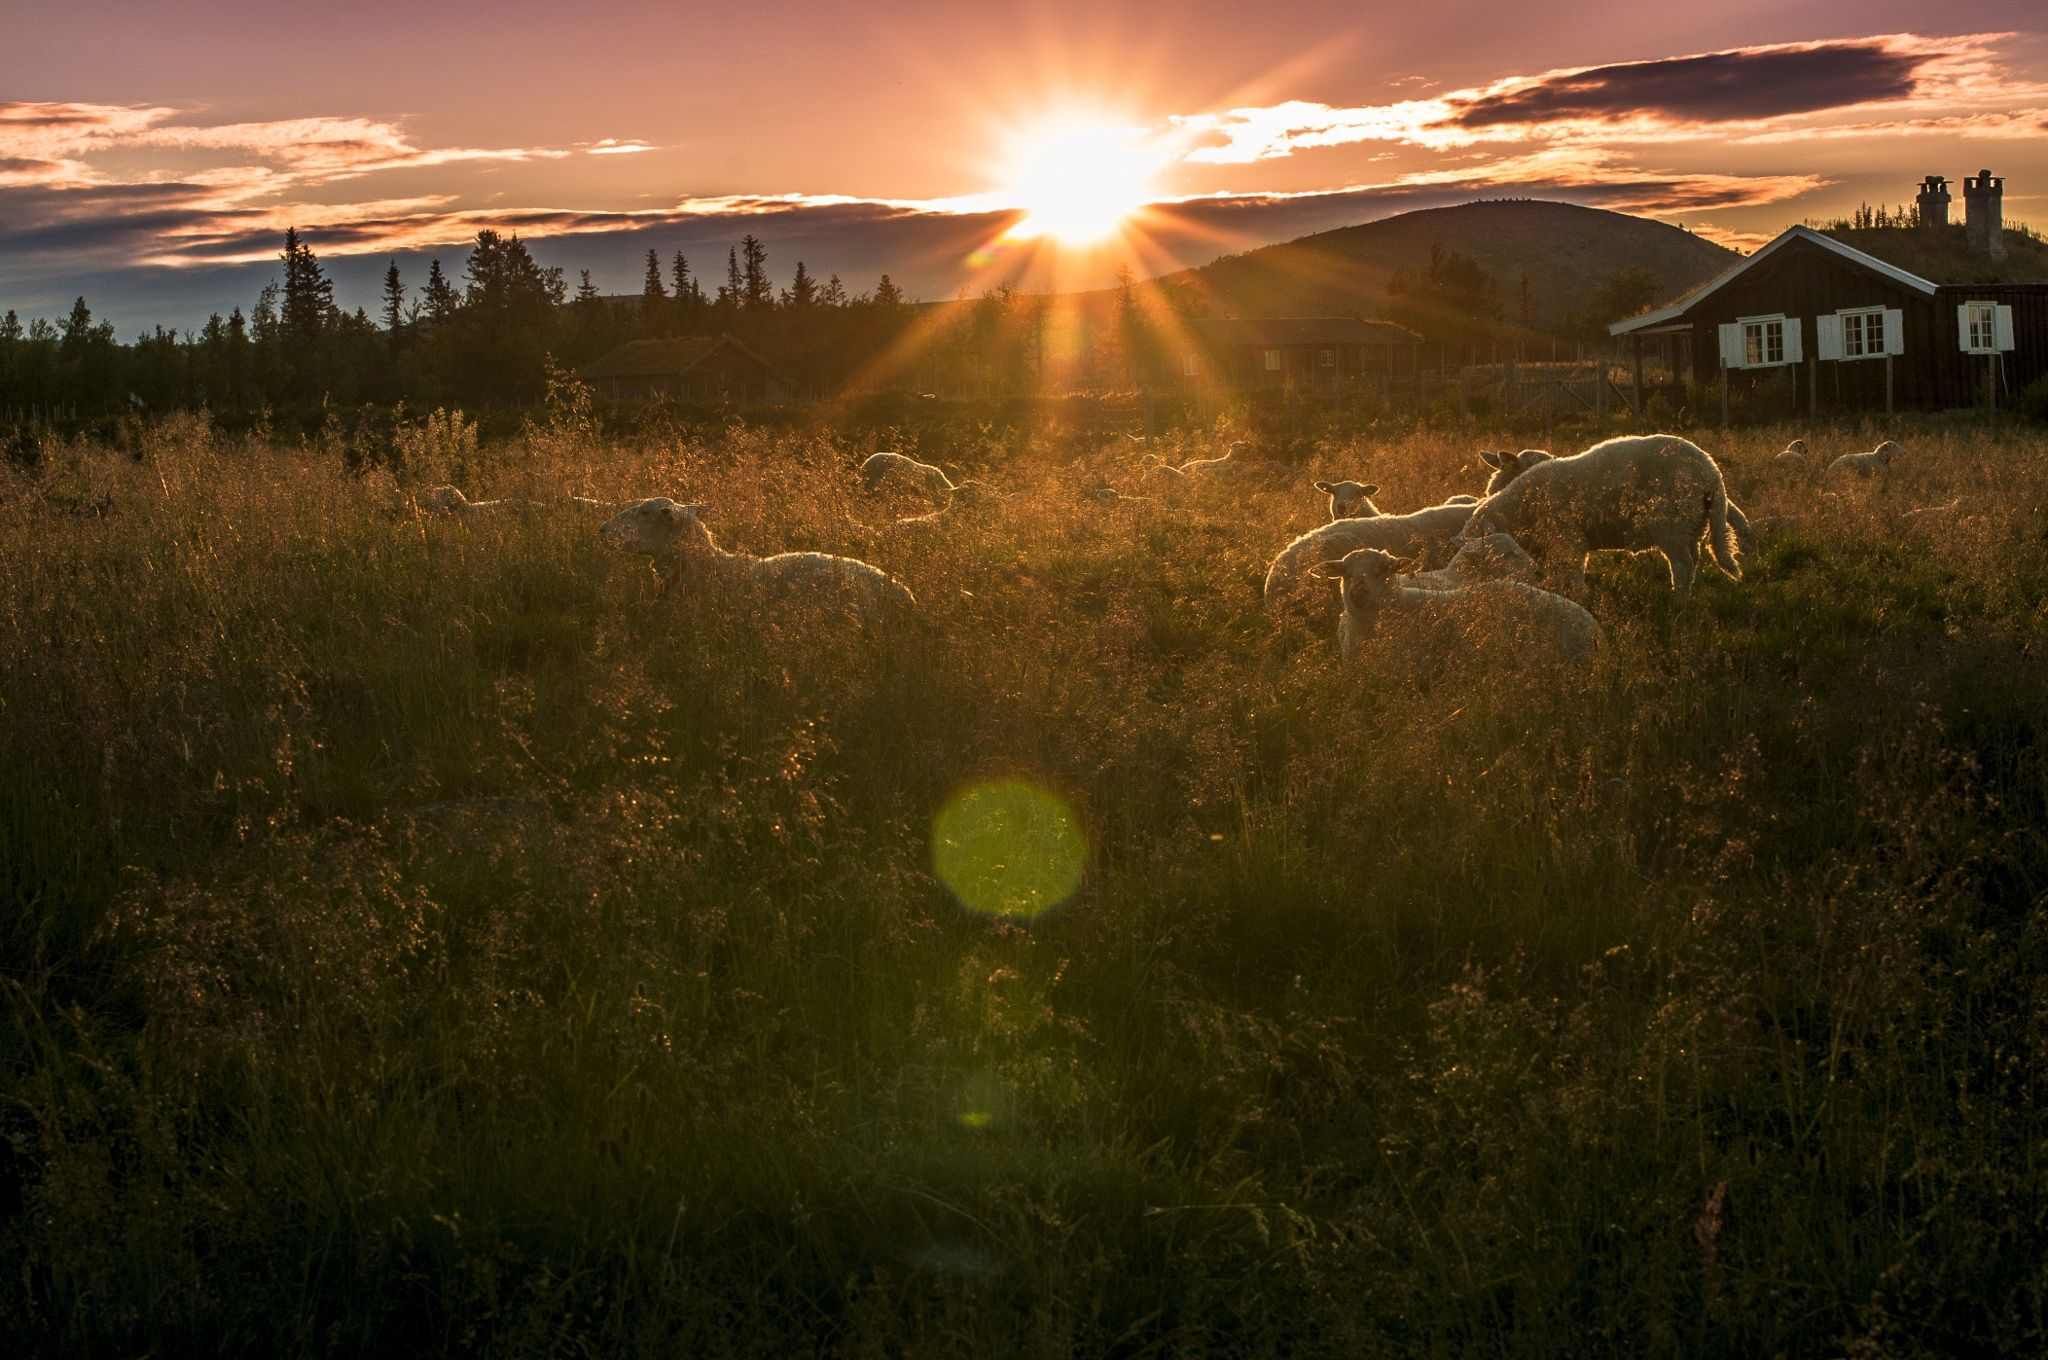 Sheep in sunset by Kristin Brænd on 500px